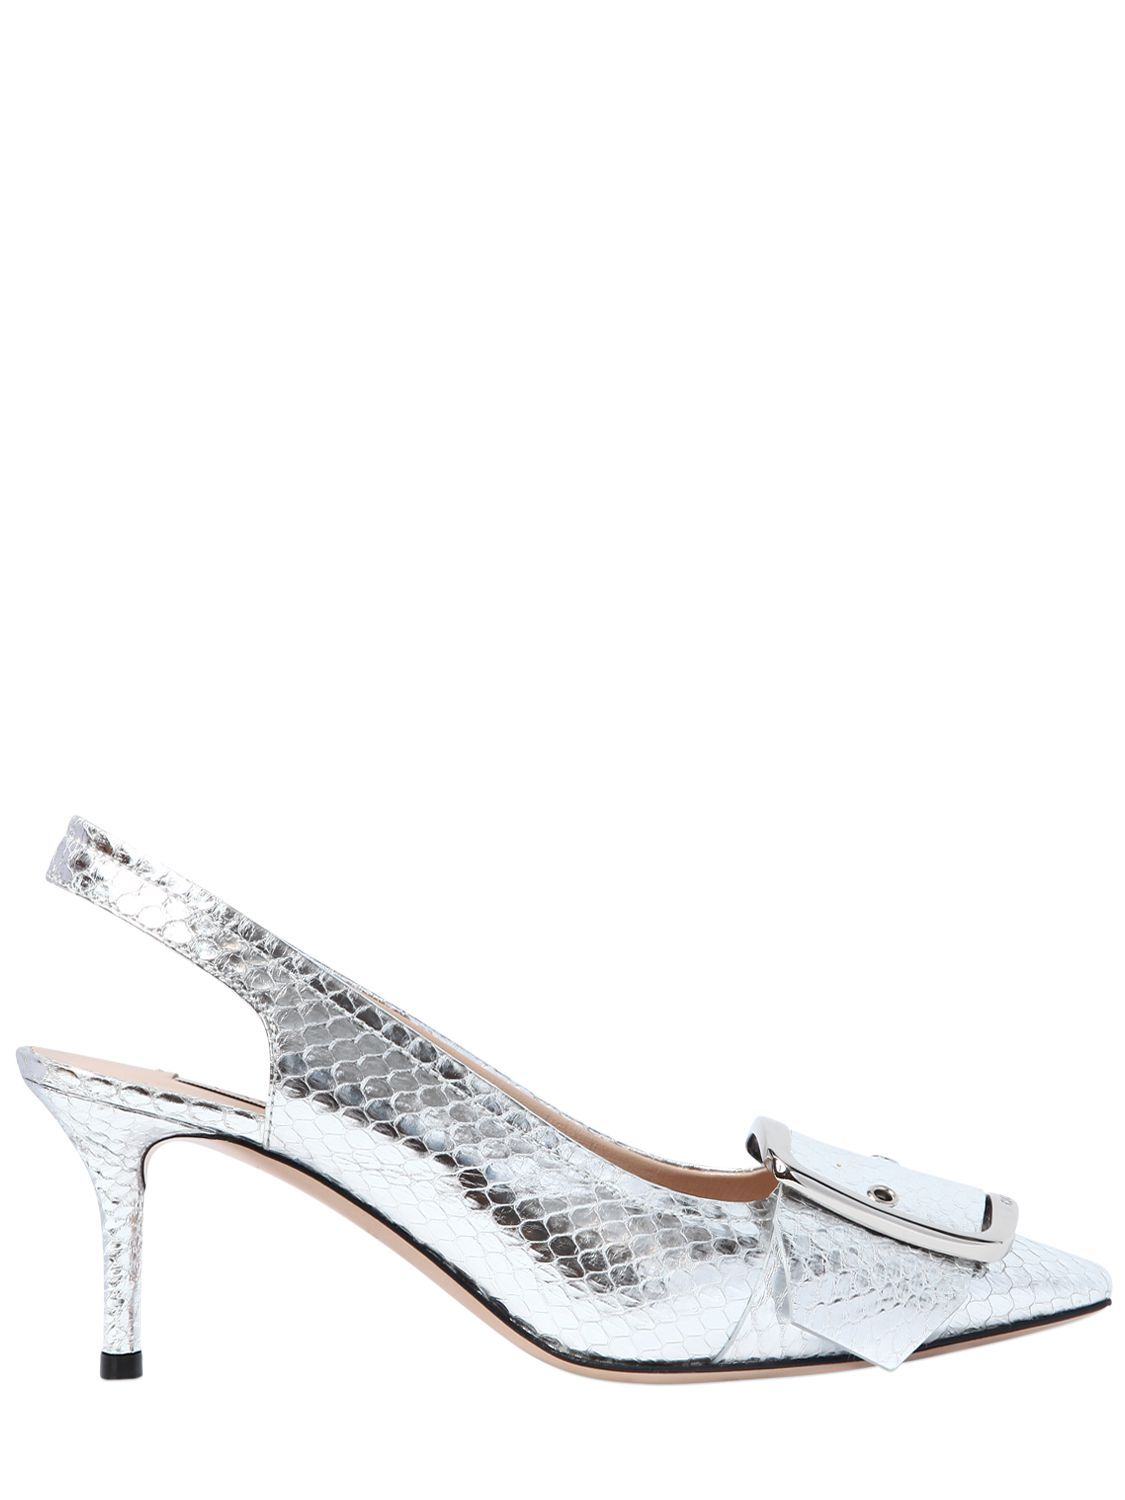 Amazing Price Outlet With Paypal Casadei 60MM BUCKLE SNAKESKIN SLINGBACK PUMPS vqo33XSHtO